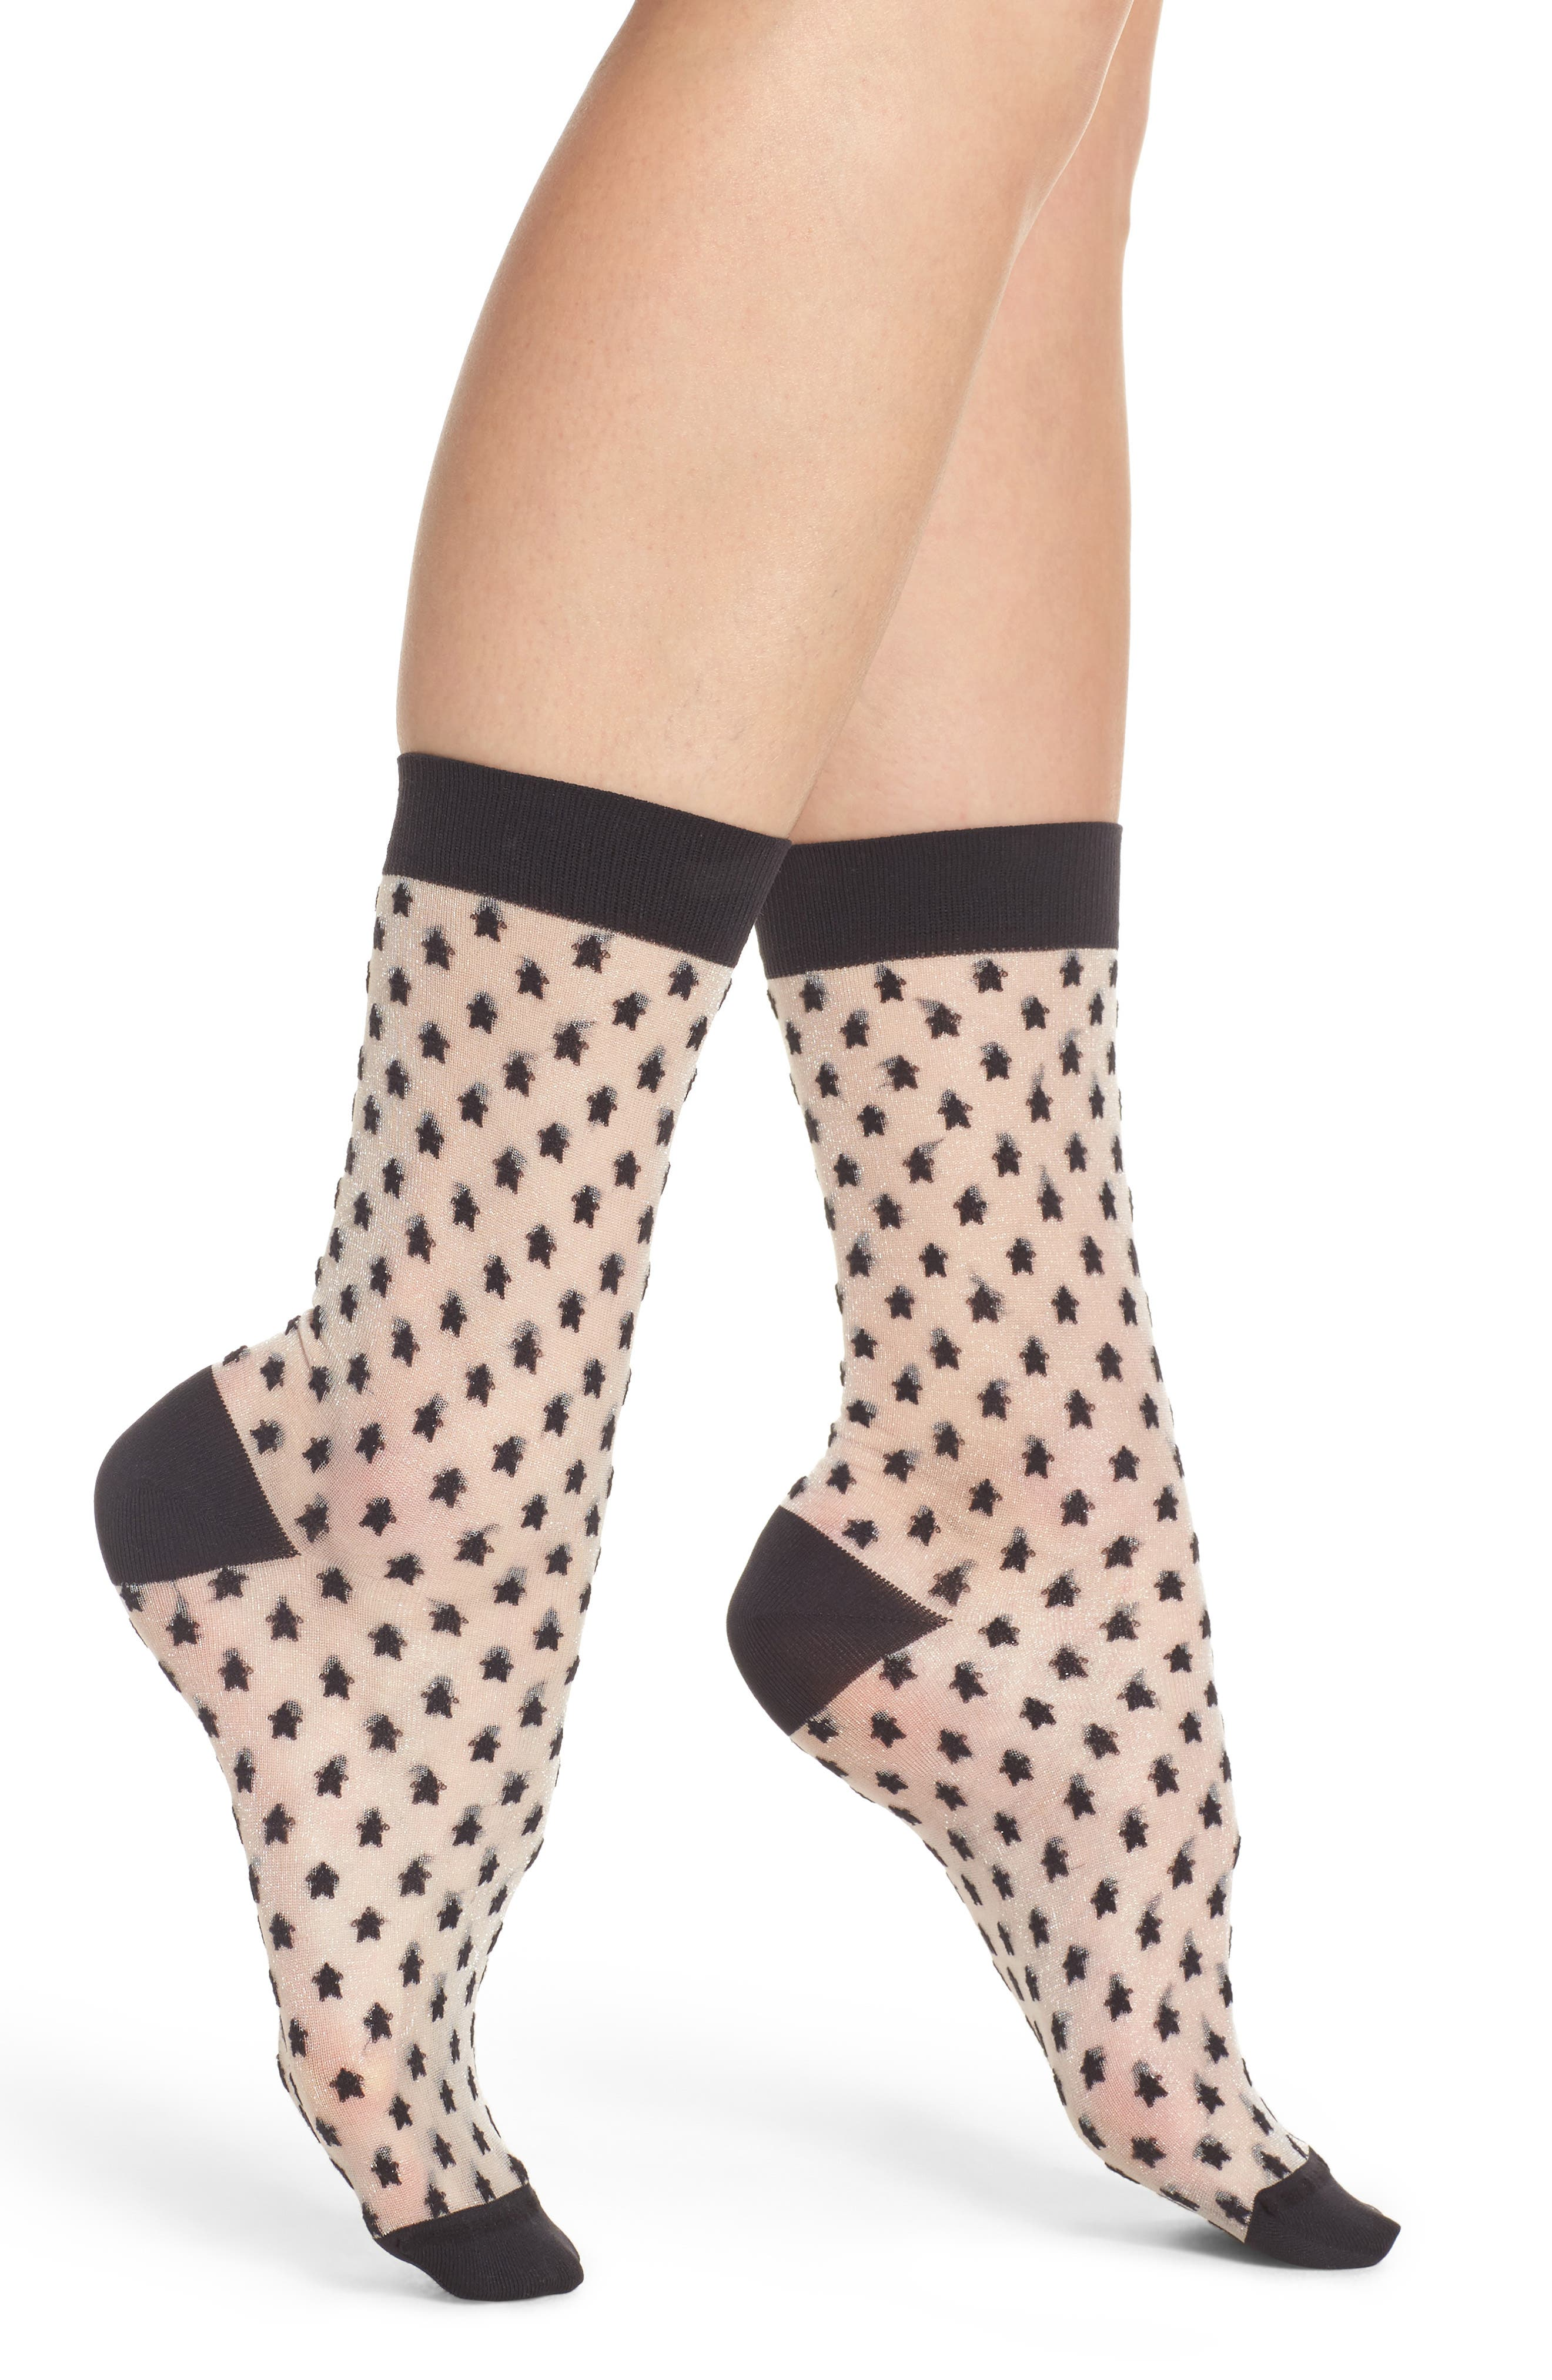 Sheer Star Crew Socks,                             Main thumbnail 1, color,                             Black Star